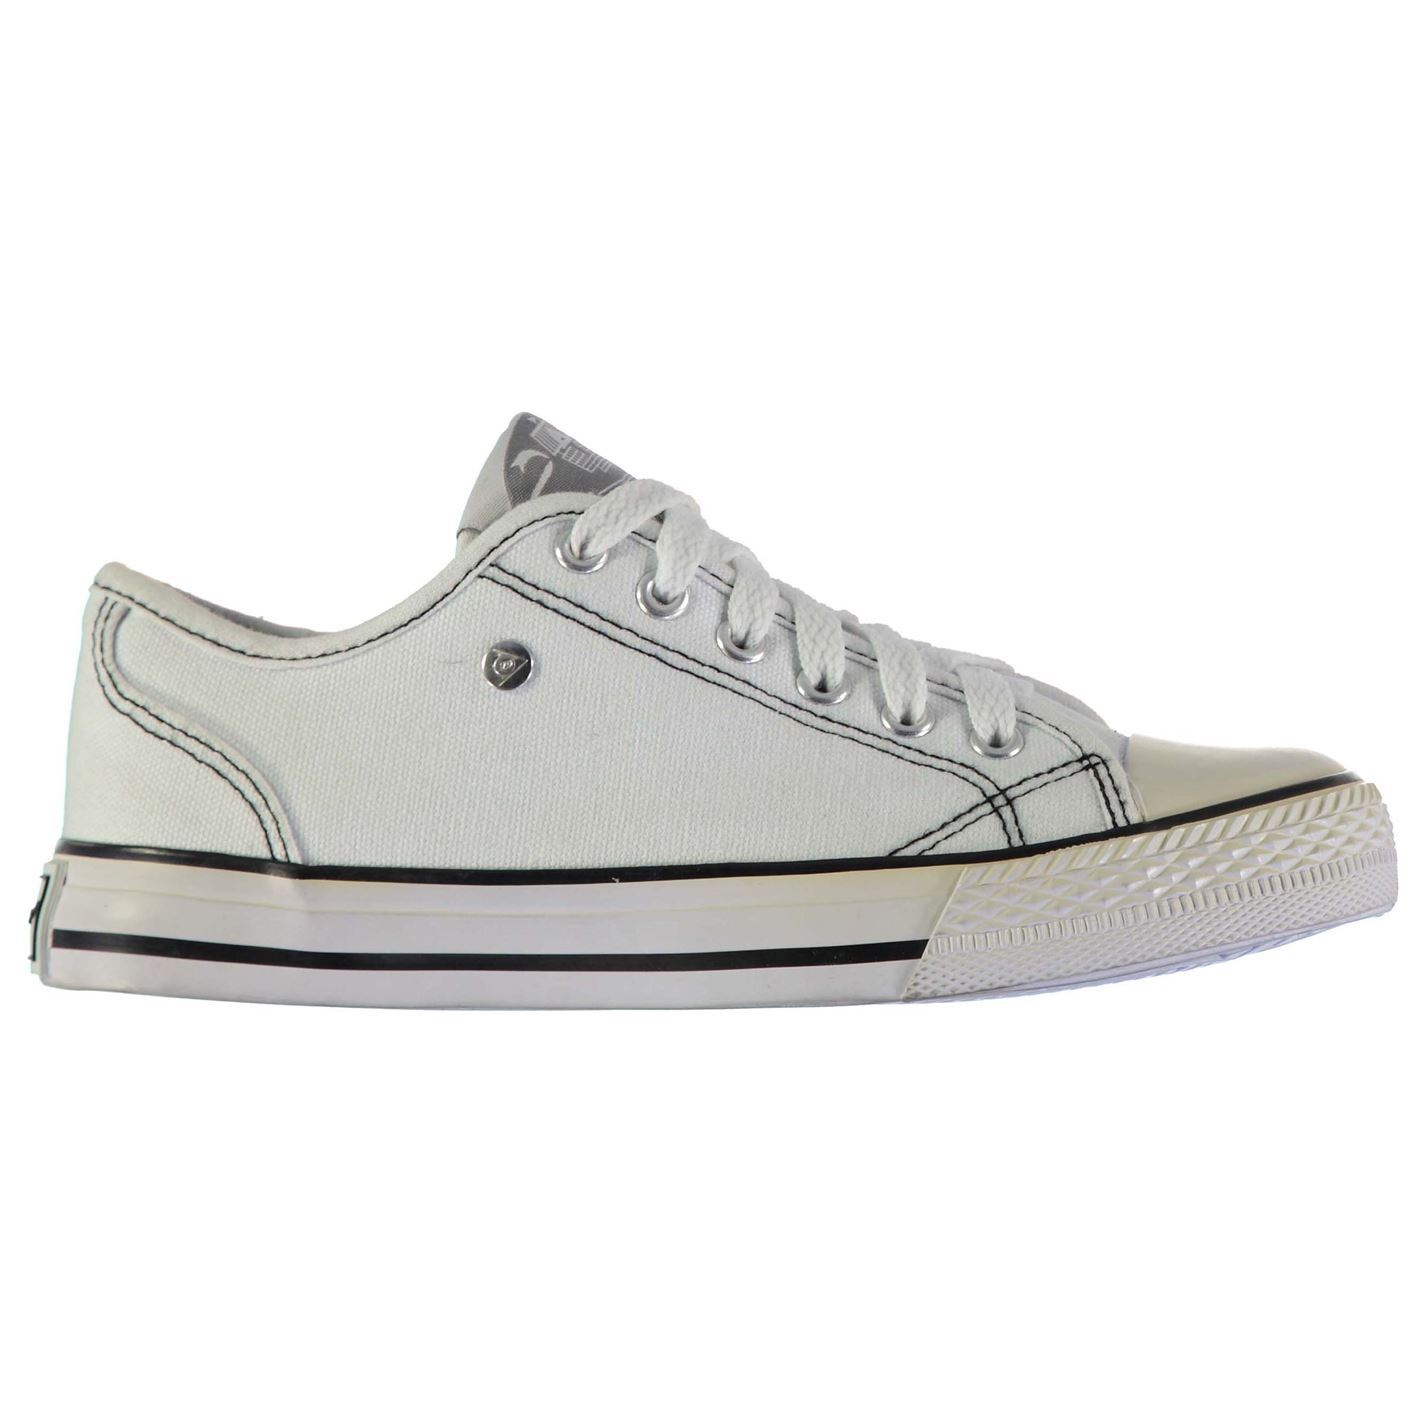 6688b29e5789 The d.unlop Canvas Low Lad.ies Trainers are id.eal for everyd.ay wear